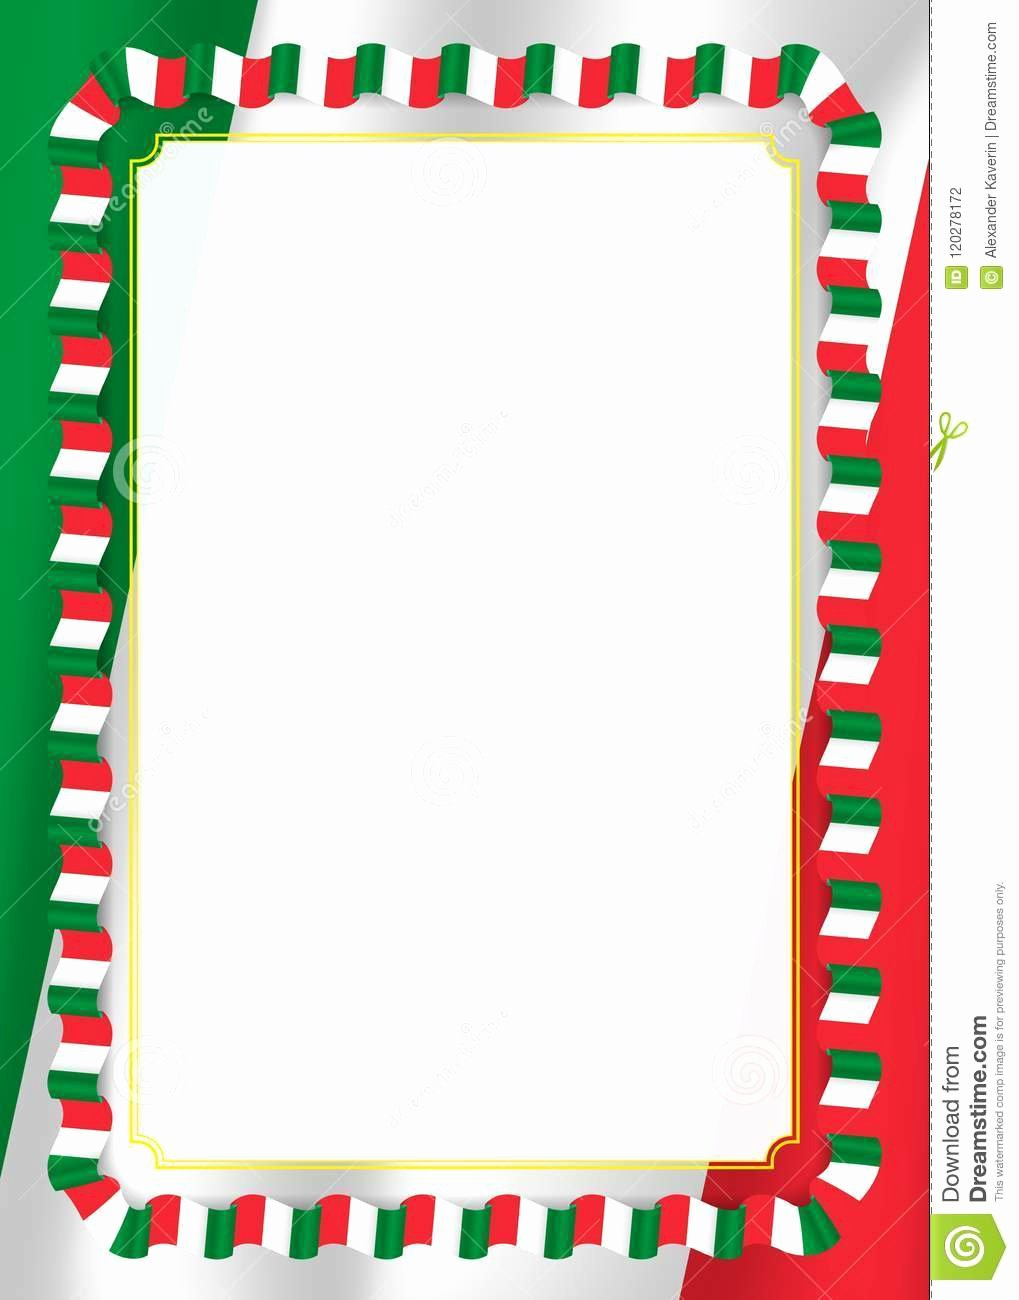 This Flag Was Flown Certificate Template Beautiful Frame and Border Ribbon with Italy Flag Template